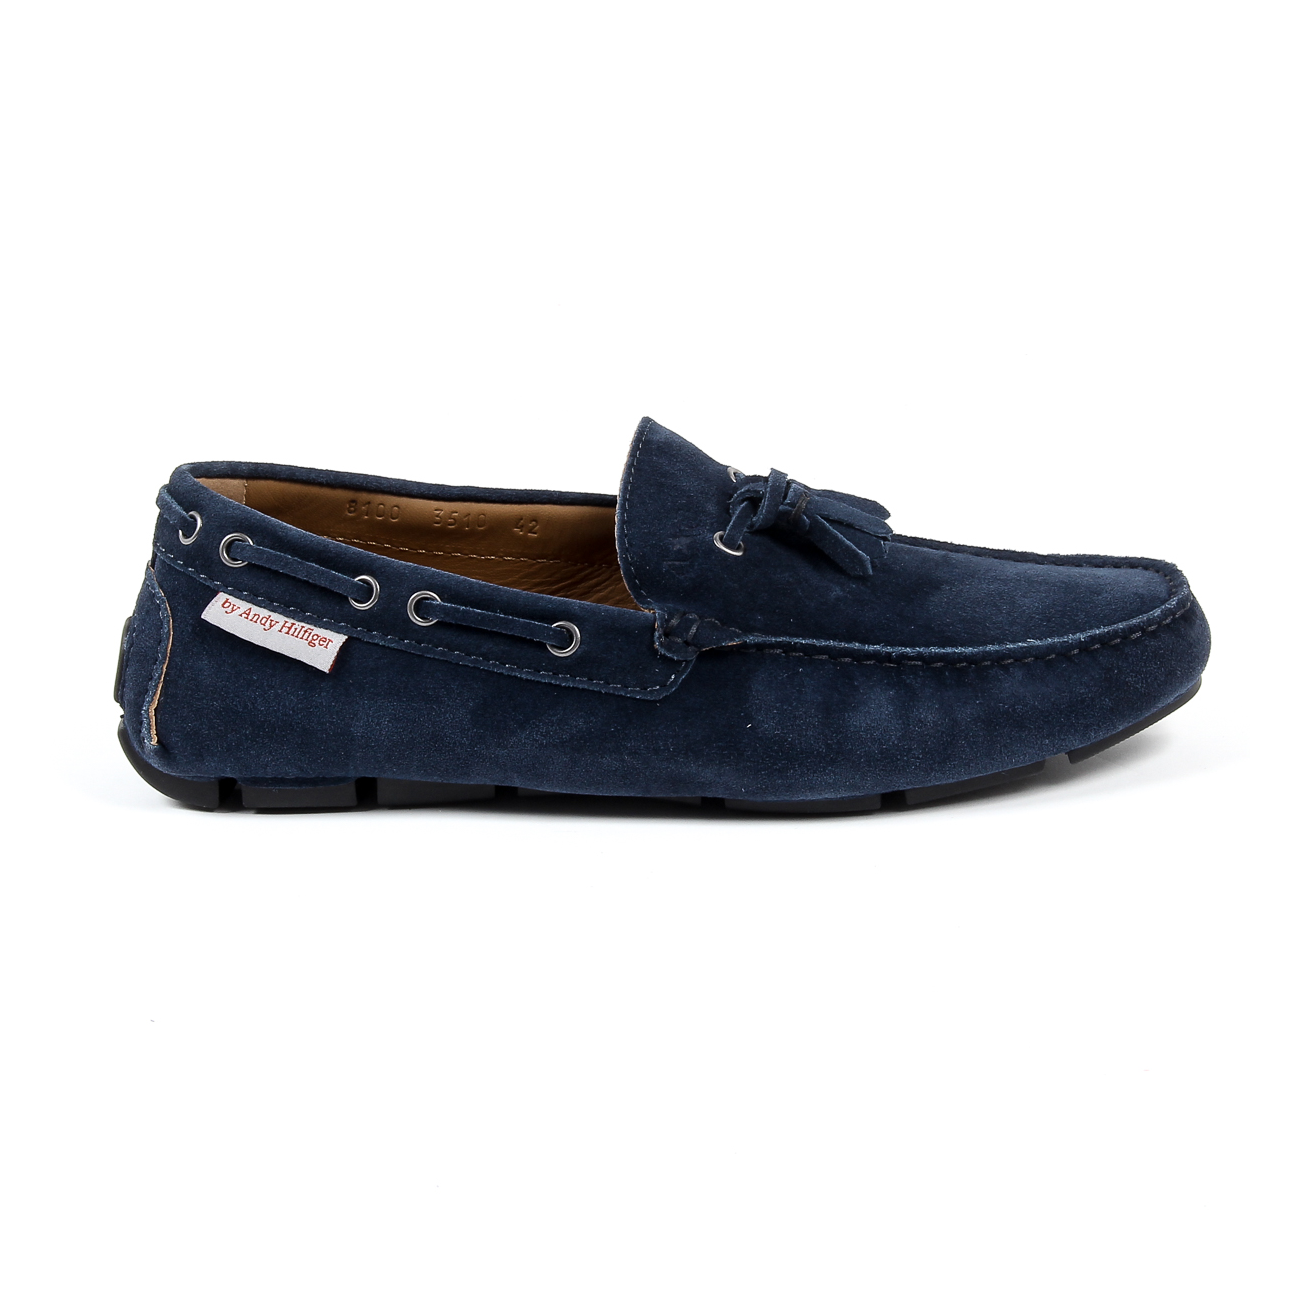 Andrew Charles Mens Loafer Blue Jeremy Buy2bee